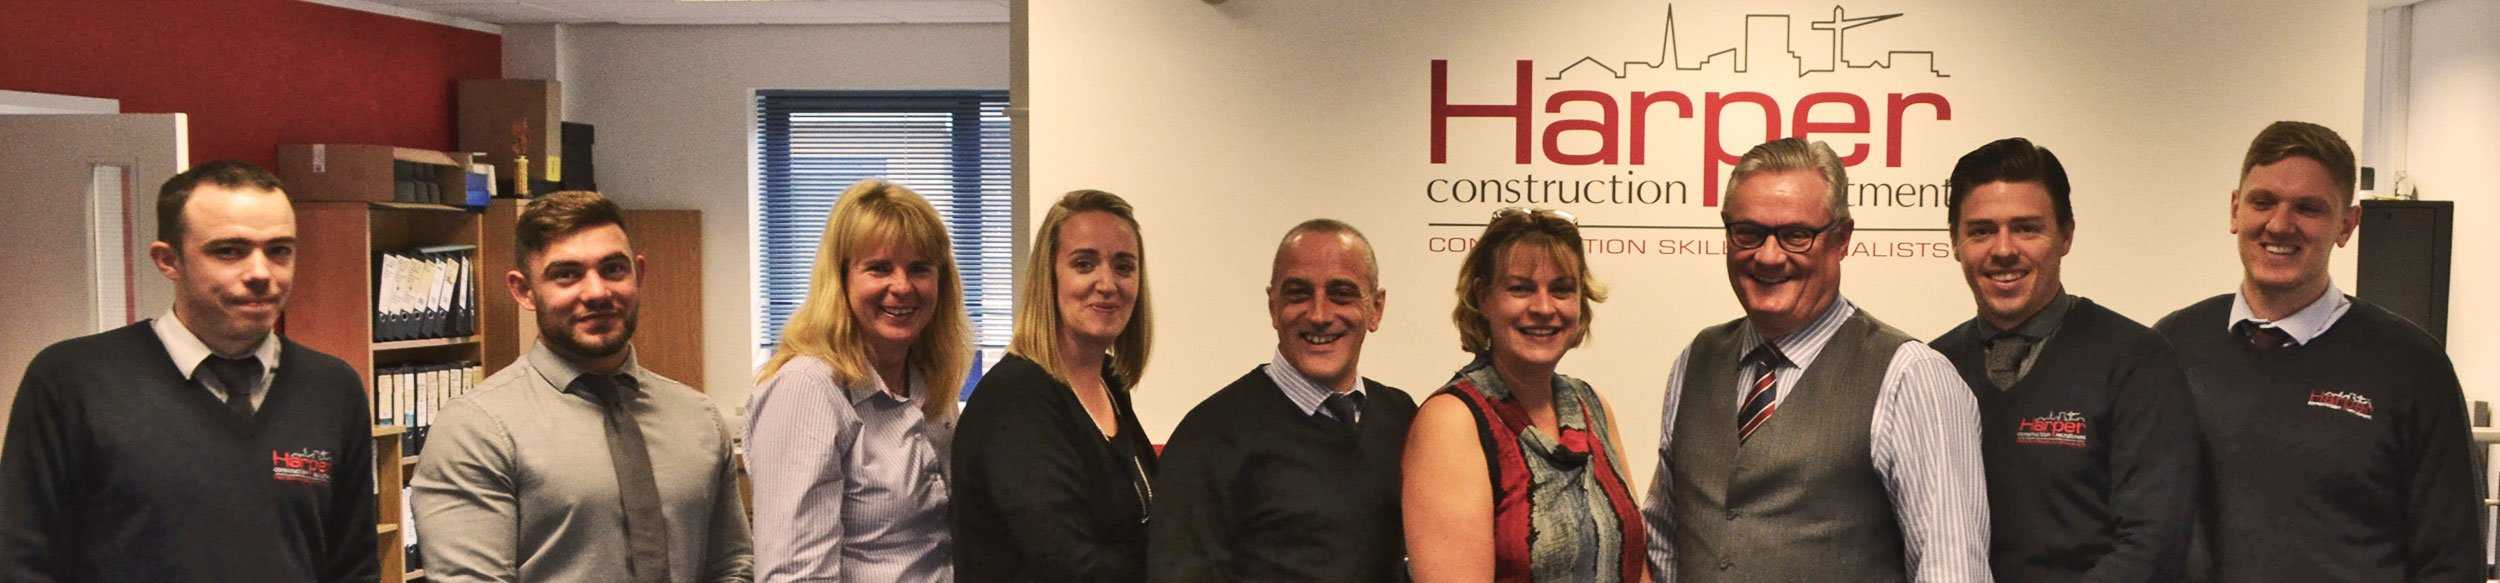 Contact Harper Construction Recruitment. The team